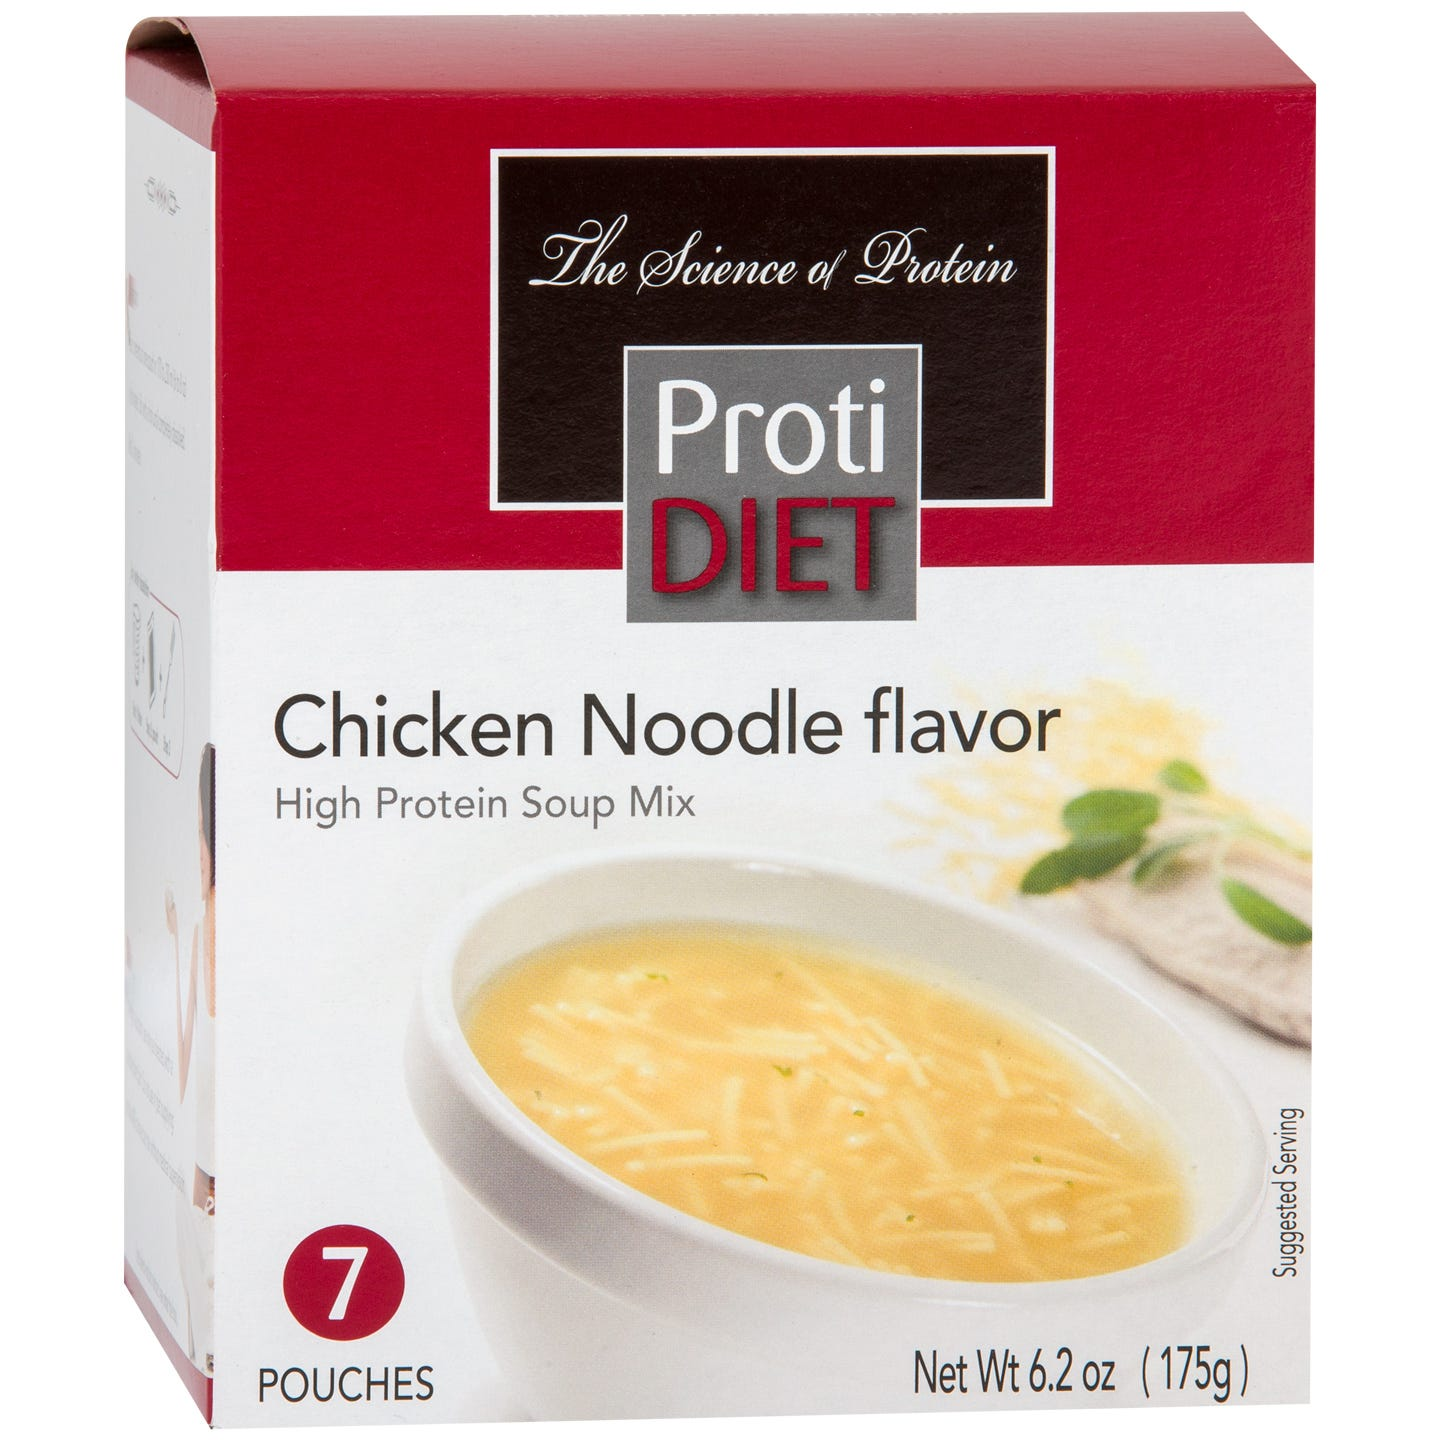 High Protein Soup Mix Chicken Noodle (7 Ct) - ProtiDiet